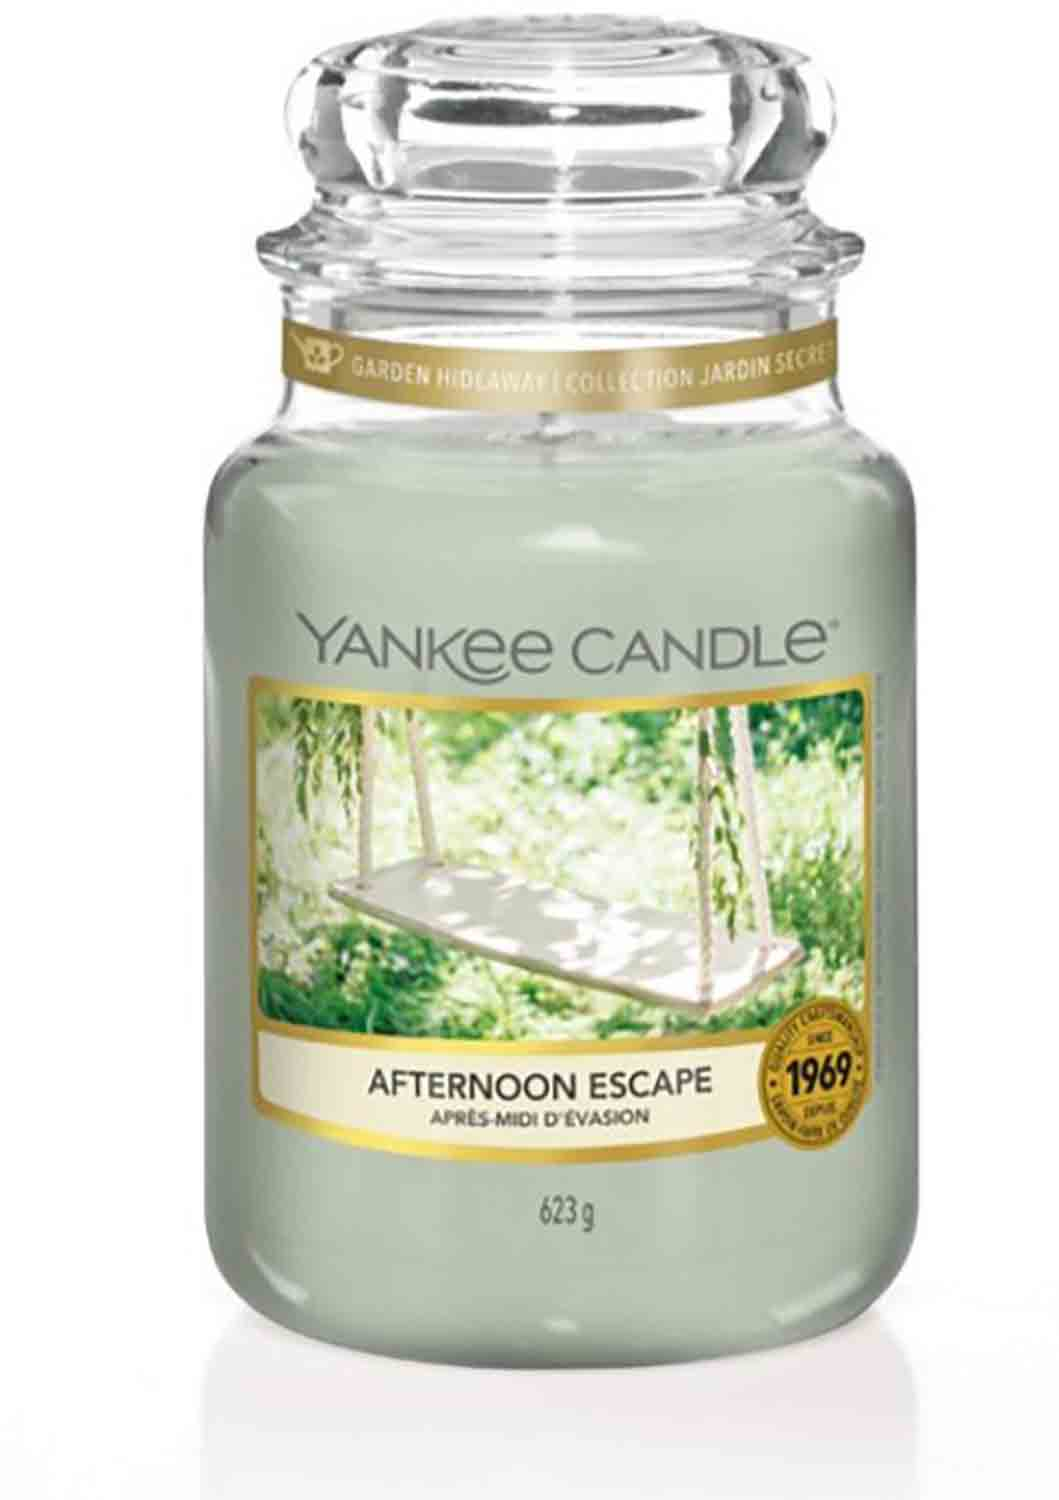 Vonná svíčka Yankee Candle  Afternoon Escape 623g